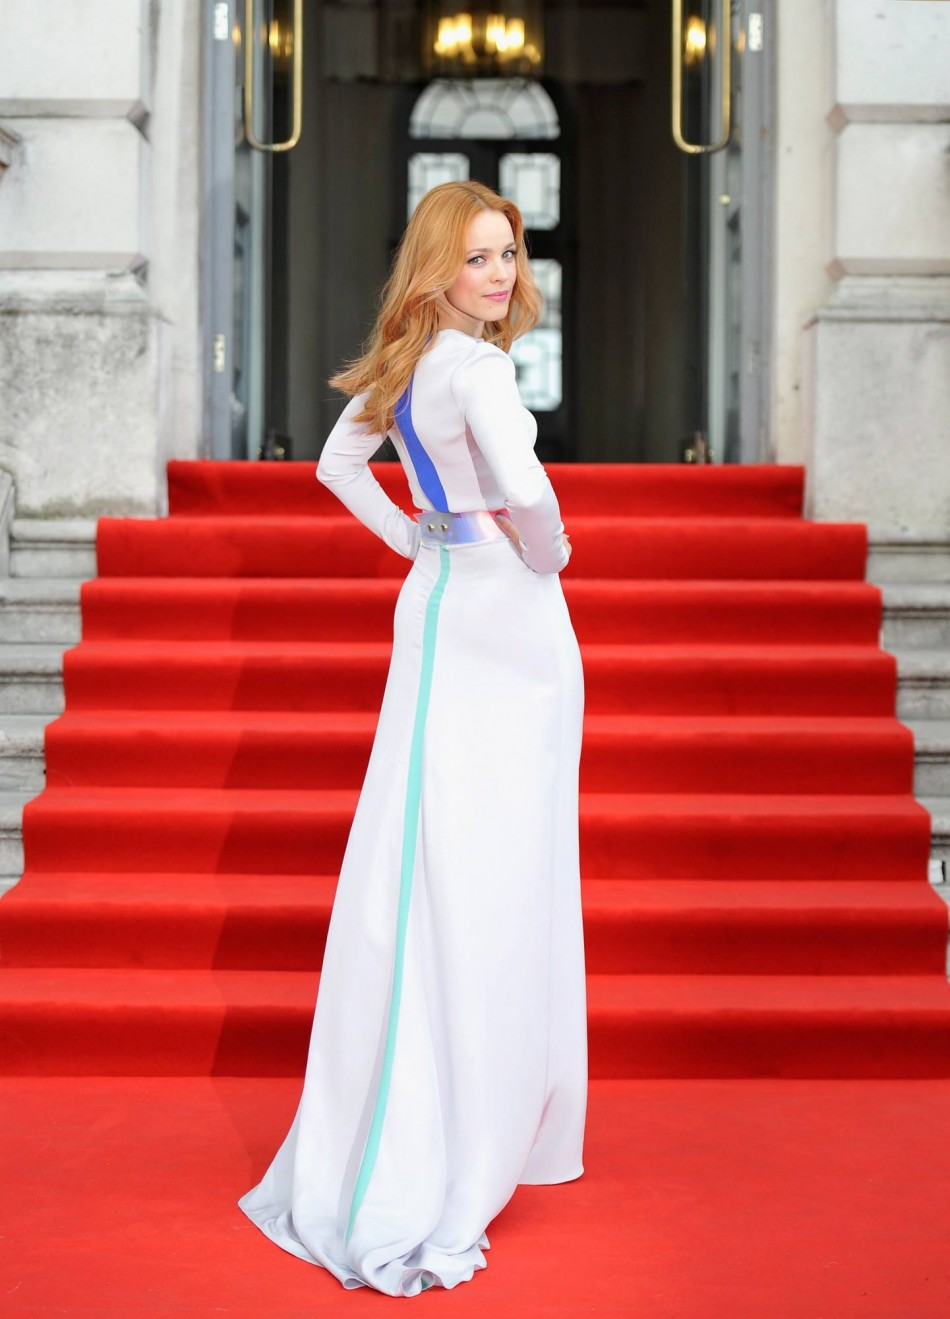 Rachel McAdams wore a white Roksanda Illincic gown to the premiere of About Time at Somerset House